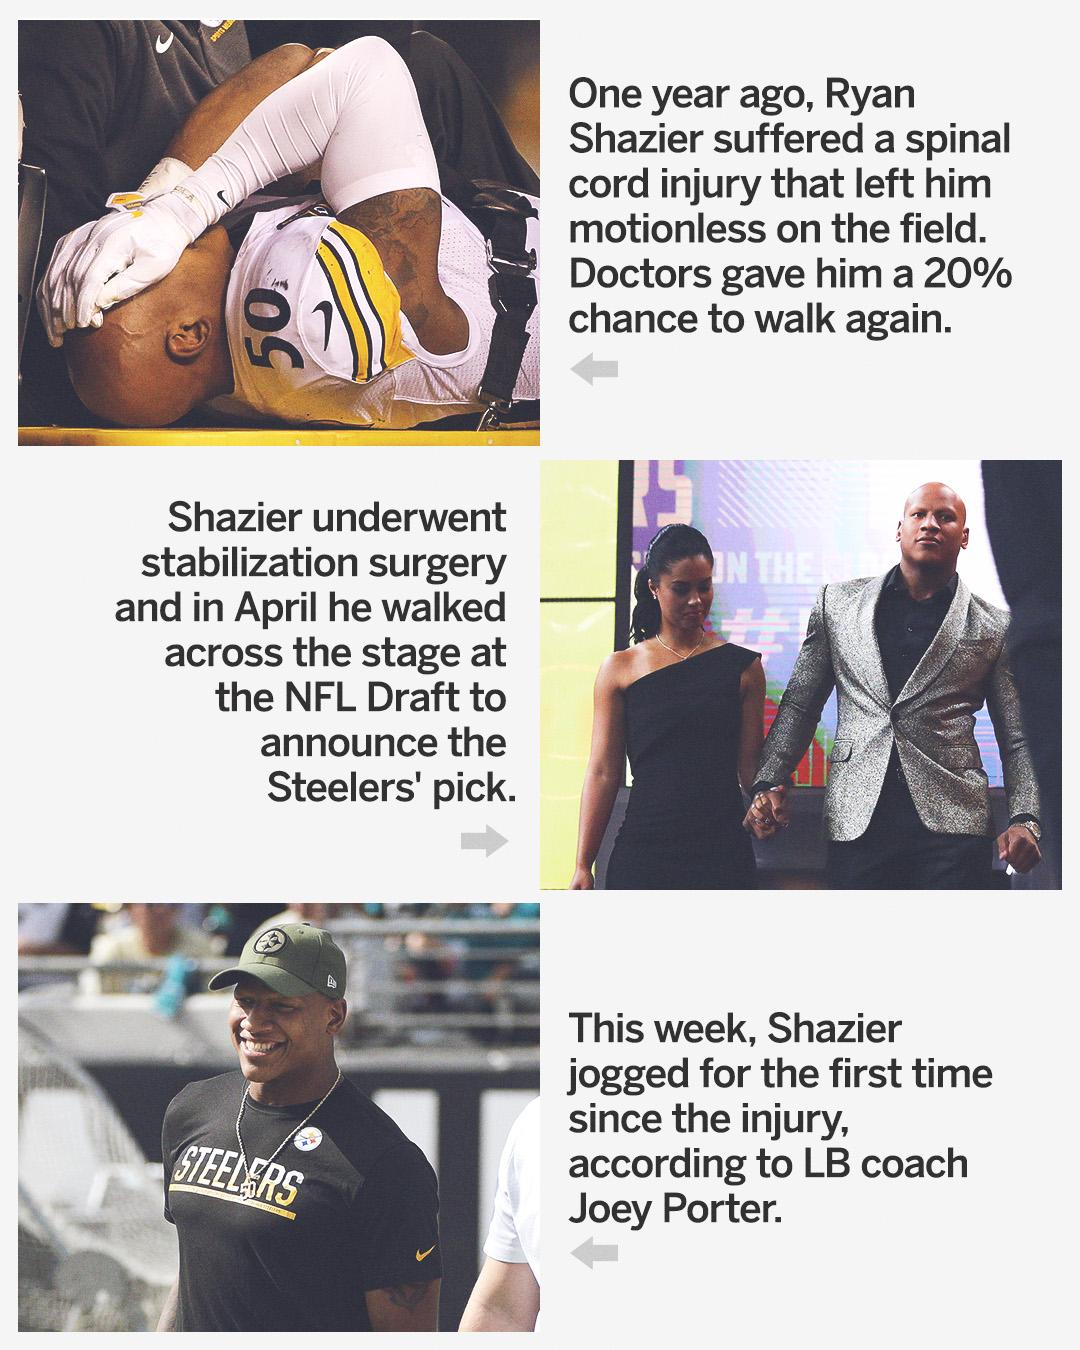 .@RyanShazier continues to be an inspiration one year later �� https://t.co/ZP7olIdnRW